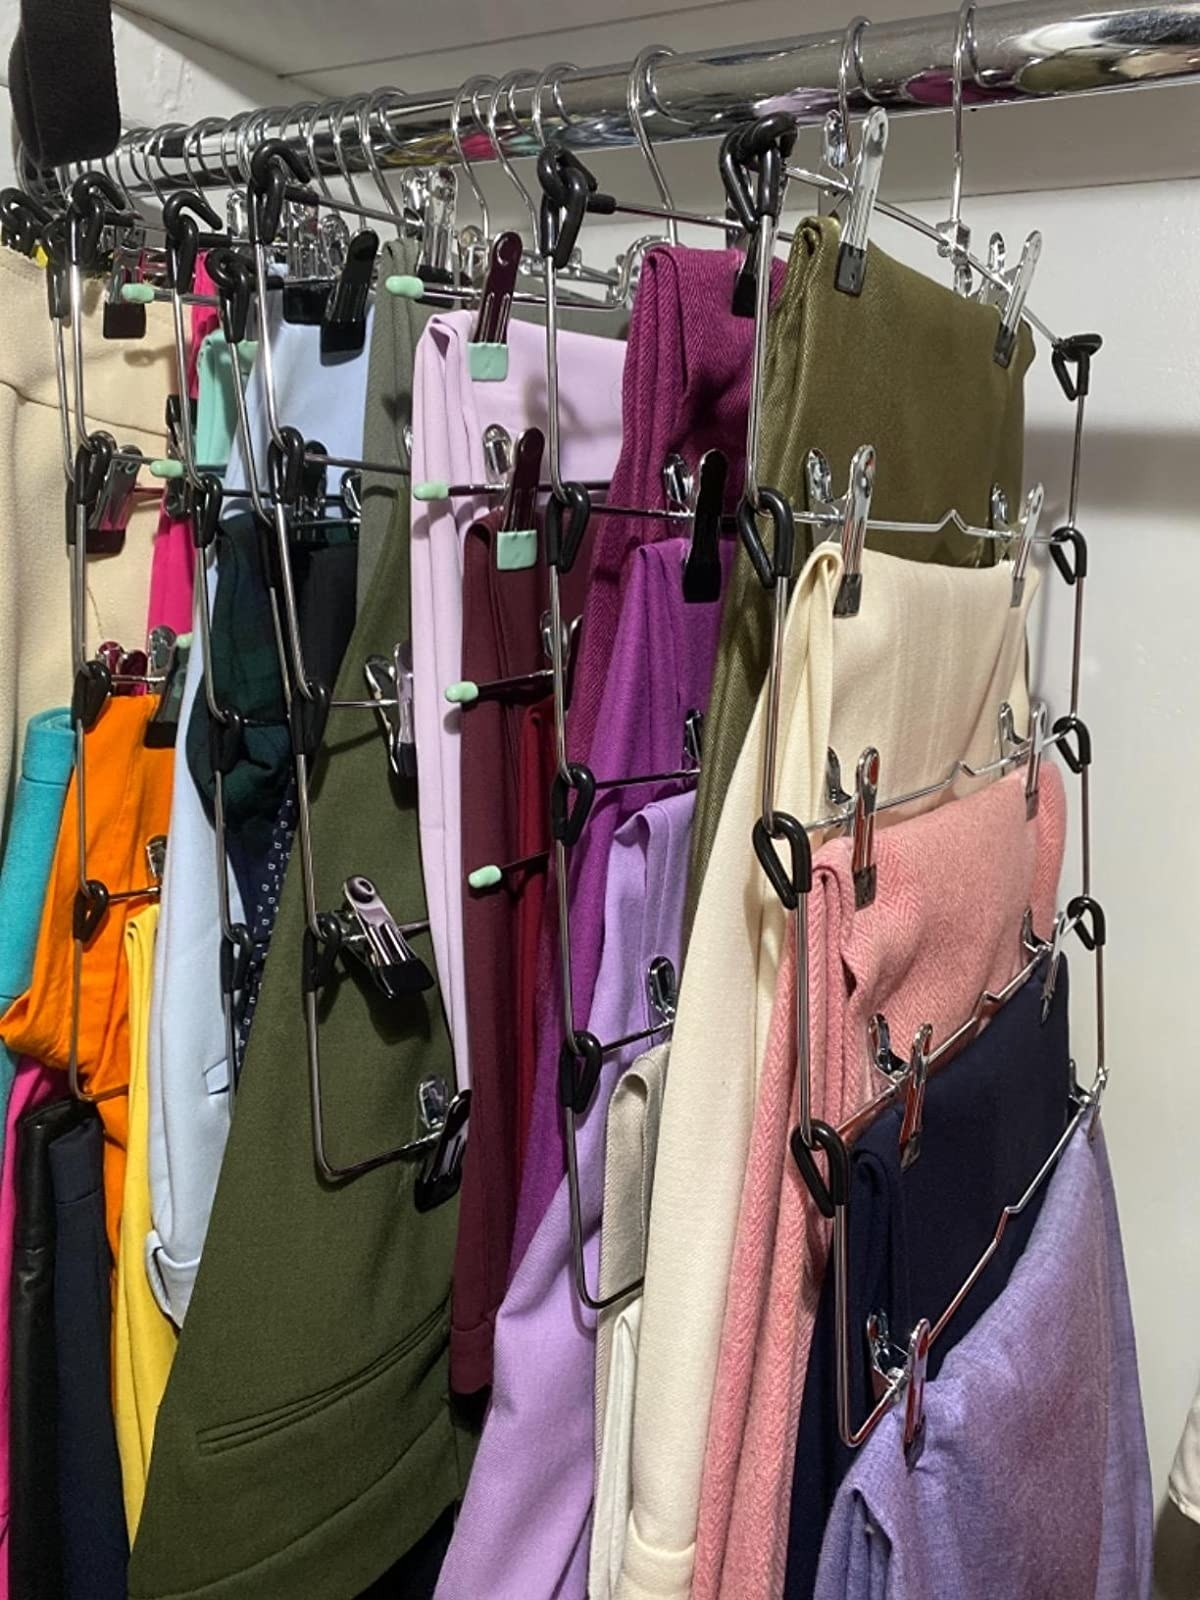 Reviewer photo of various clothing items hanging from skirt hanger